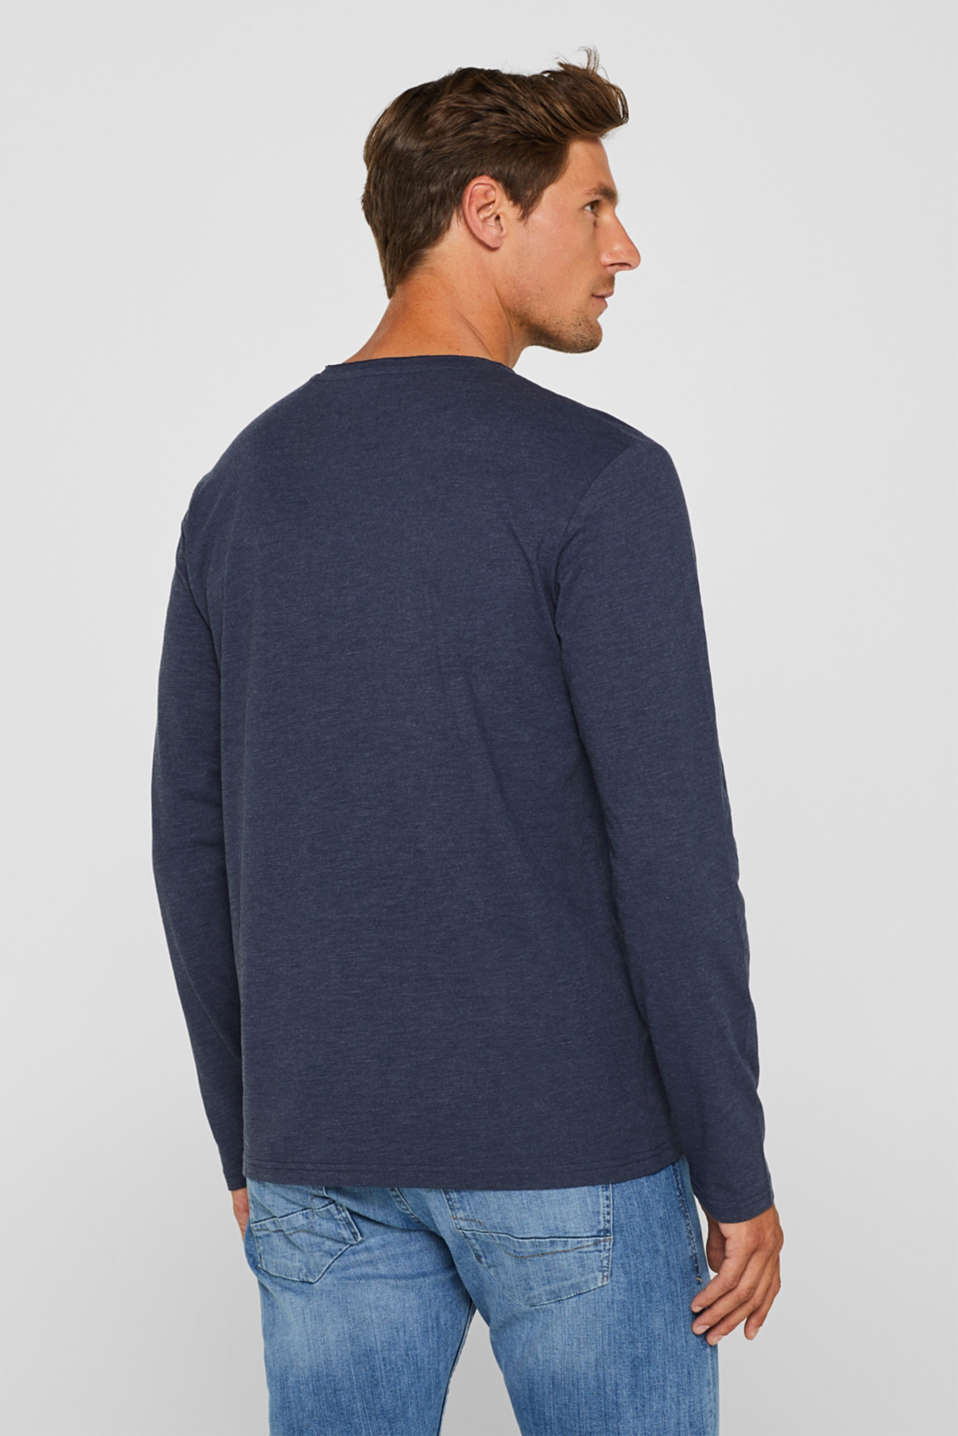 Long sleeve jersey top in blended cotton, NAVY, detail image number 3